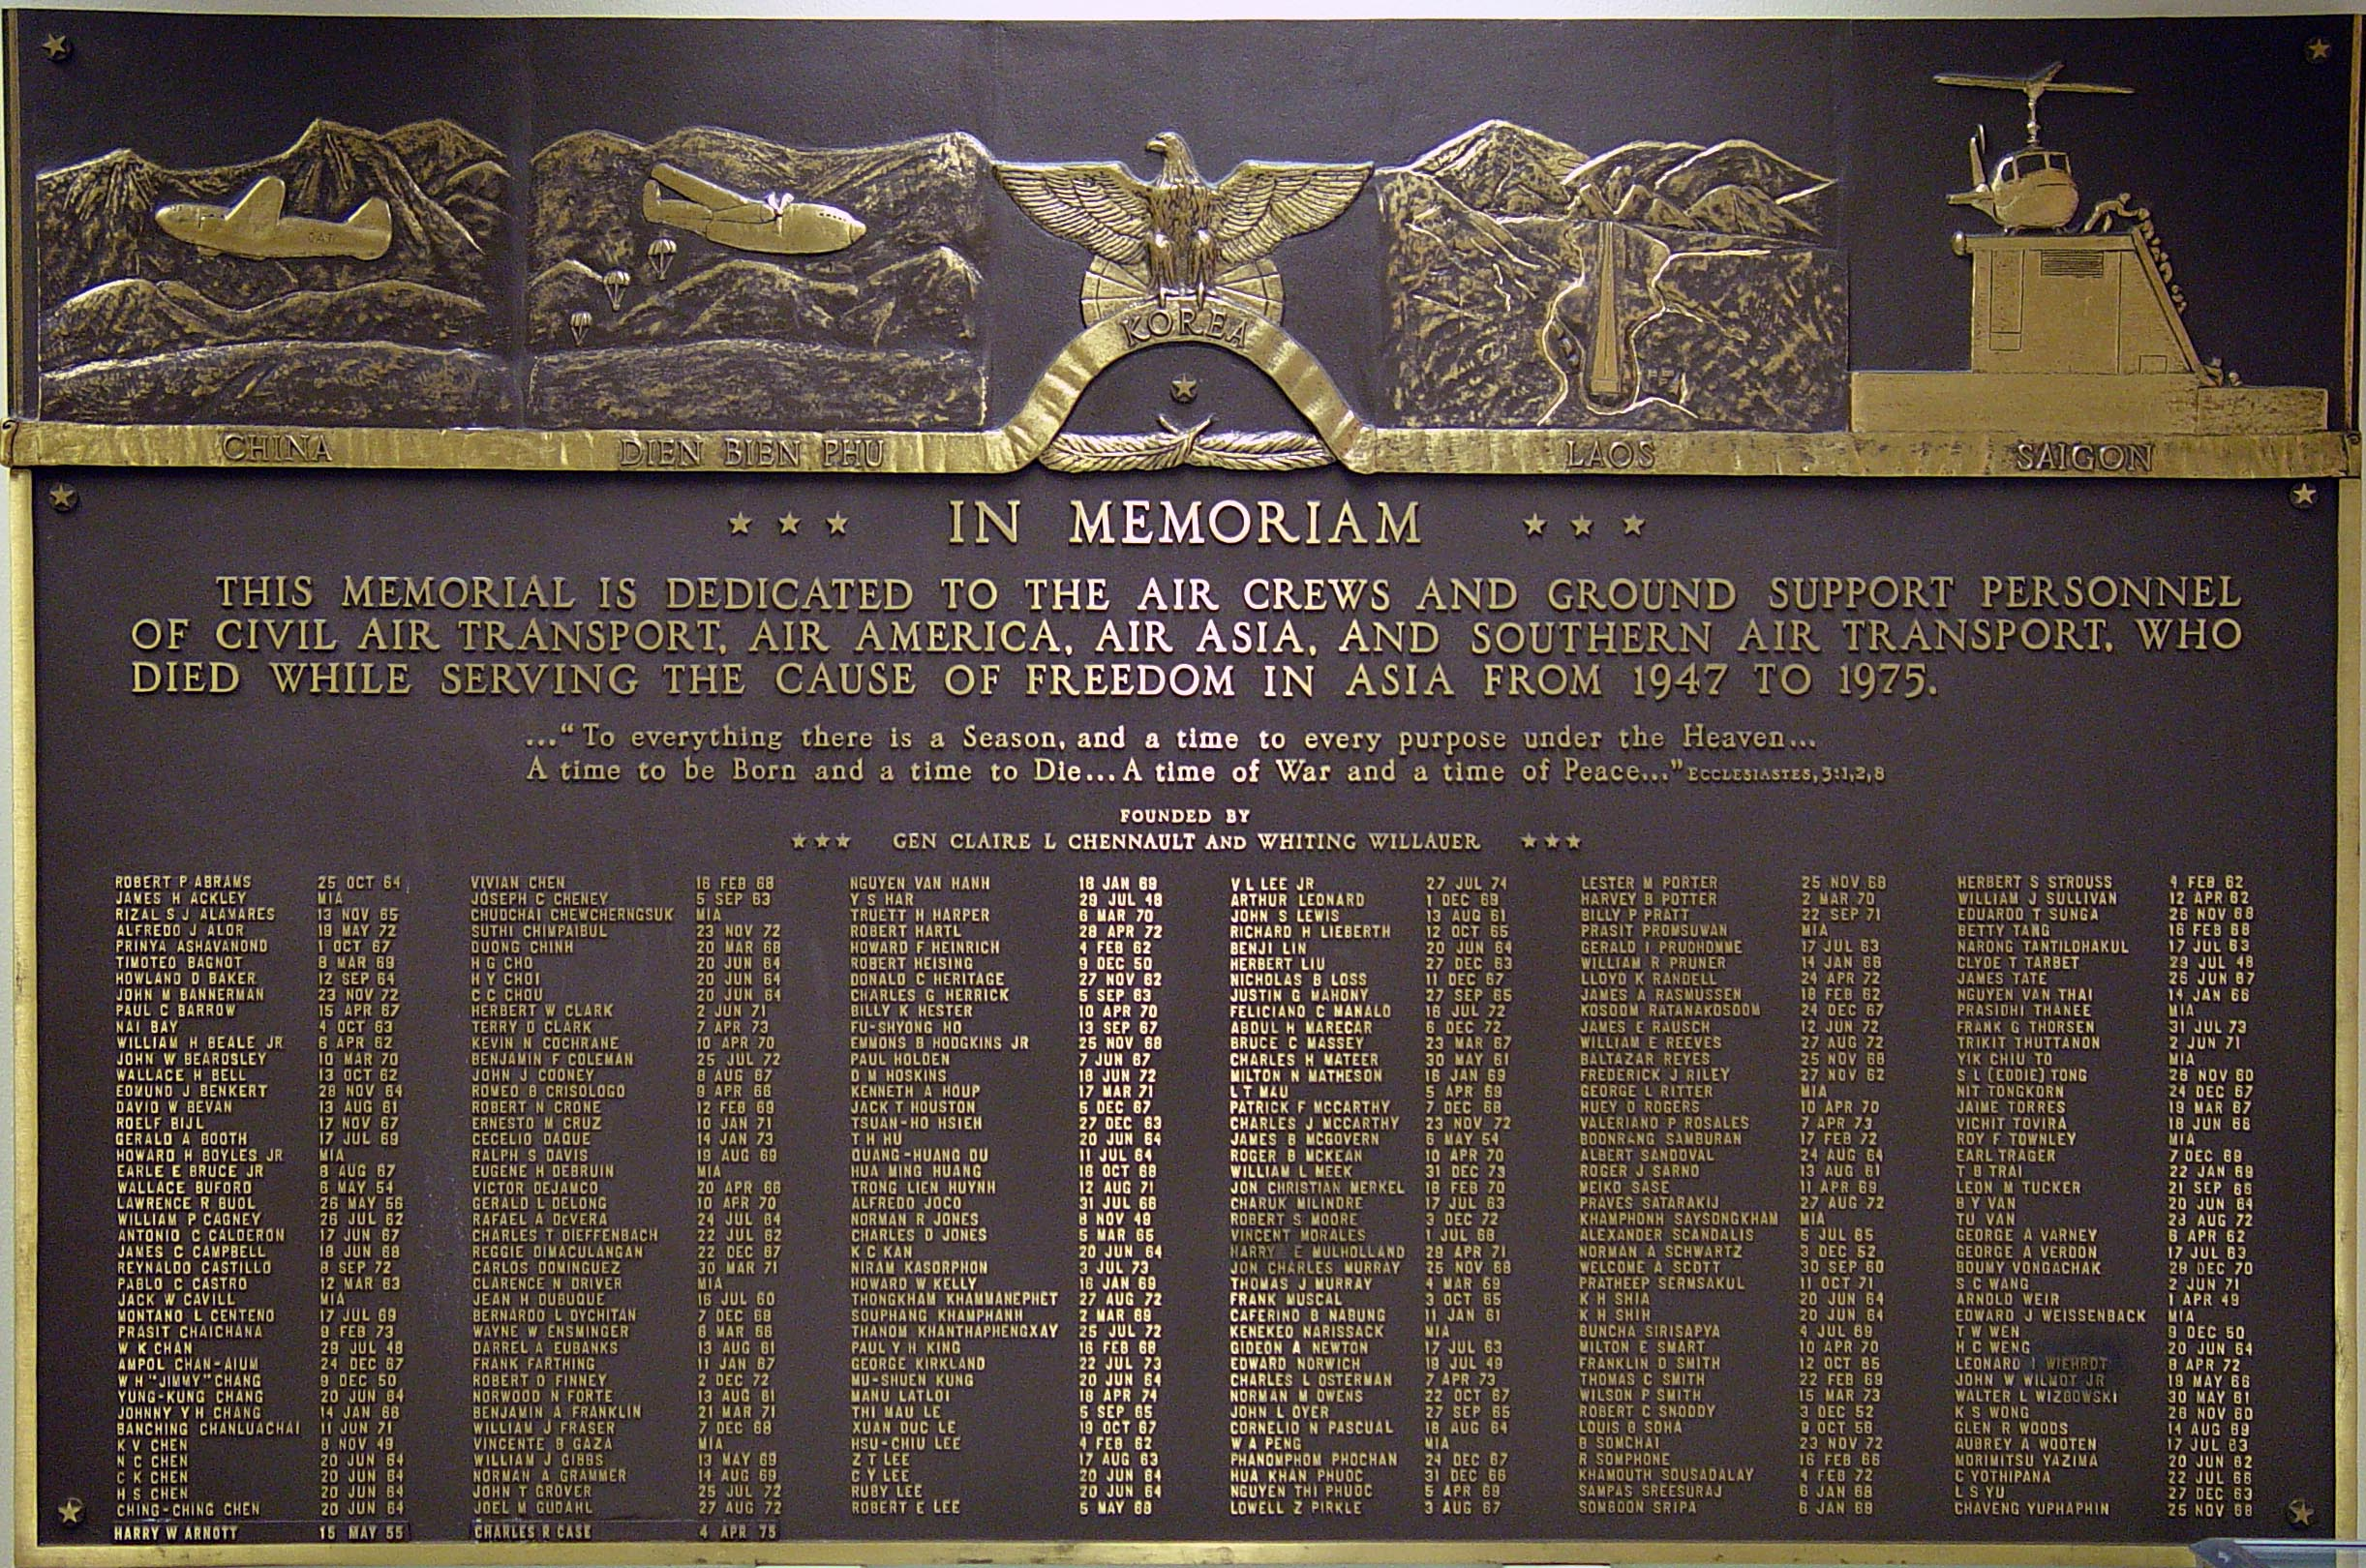 memorial plaque large